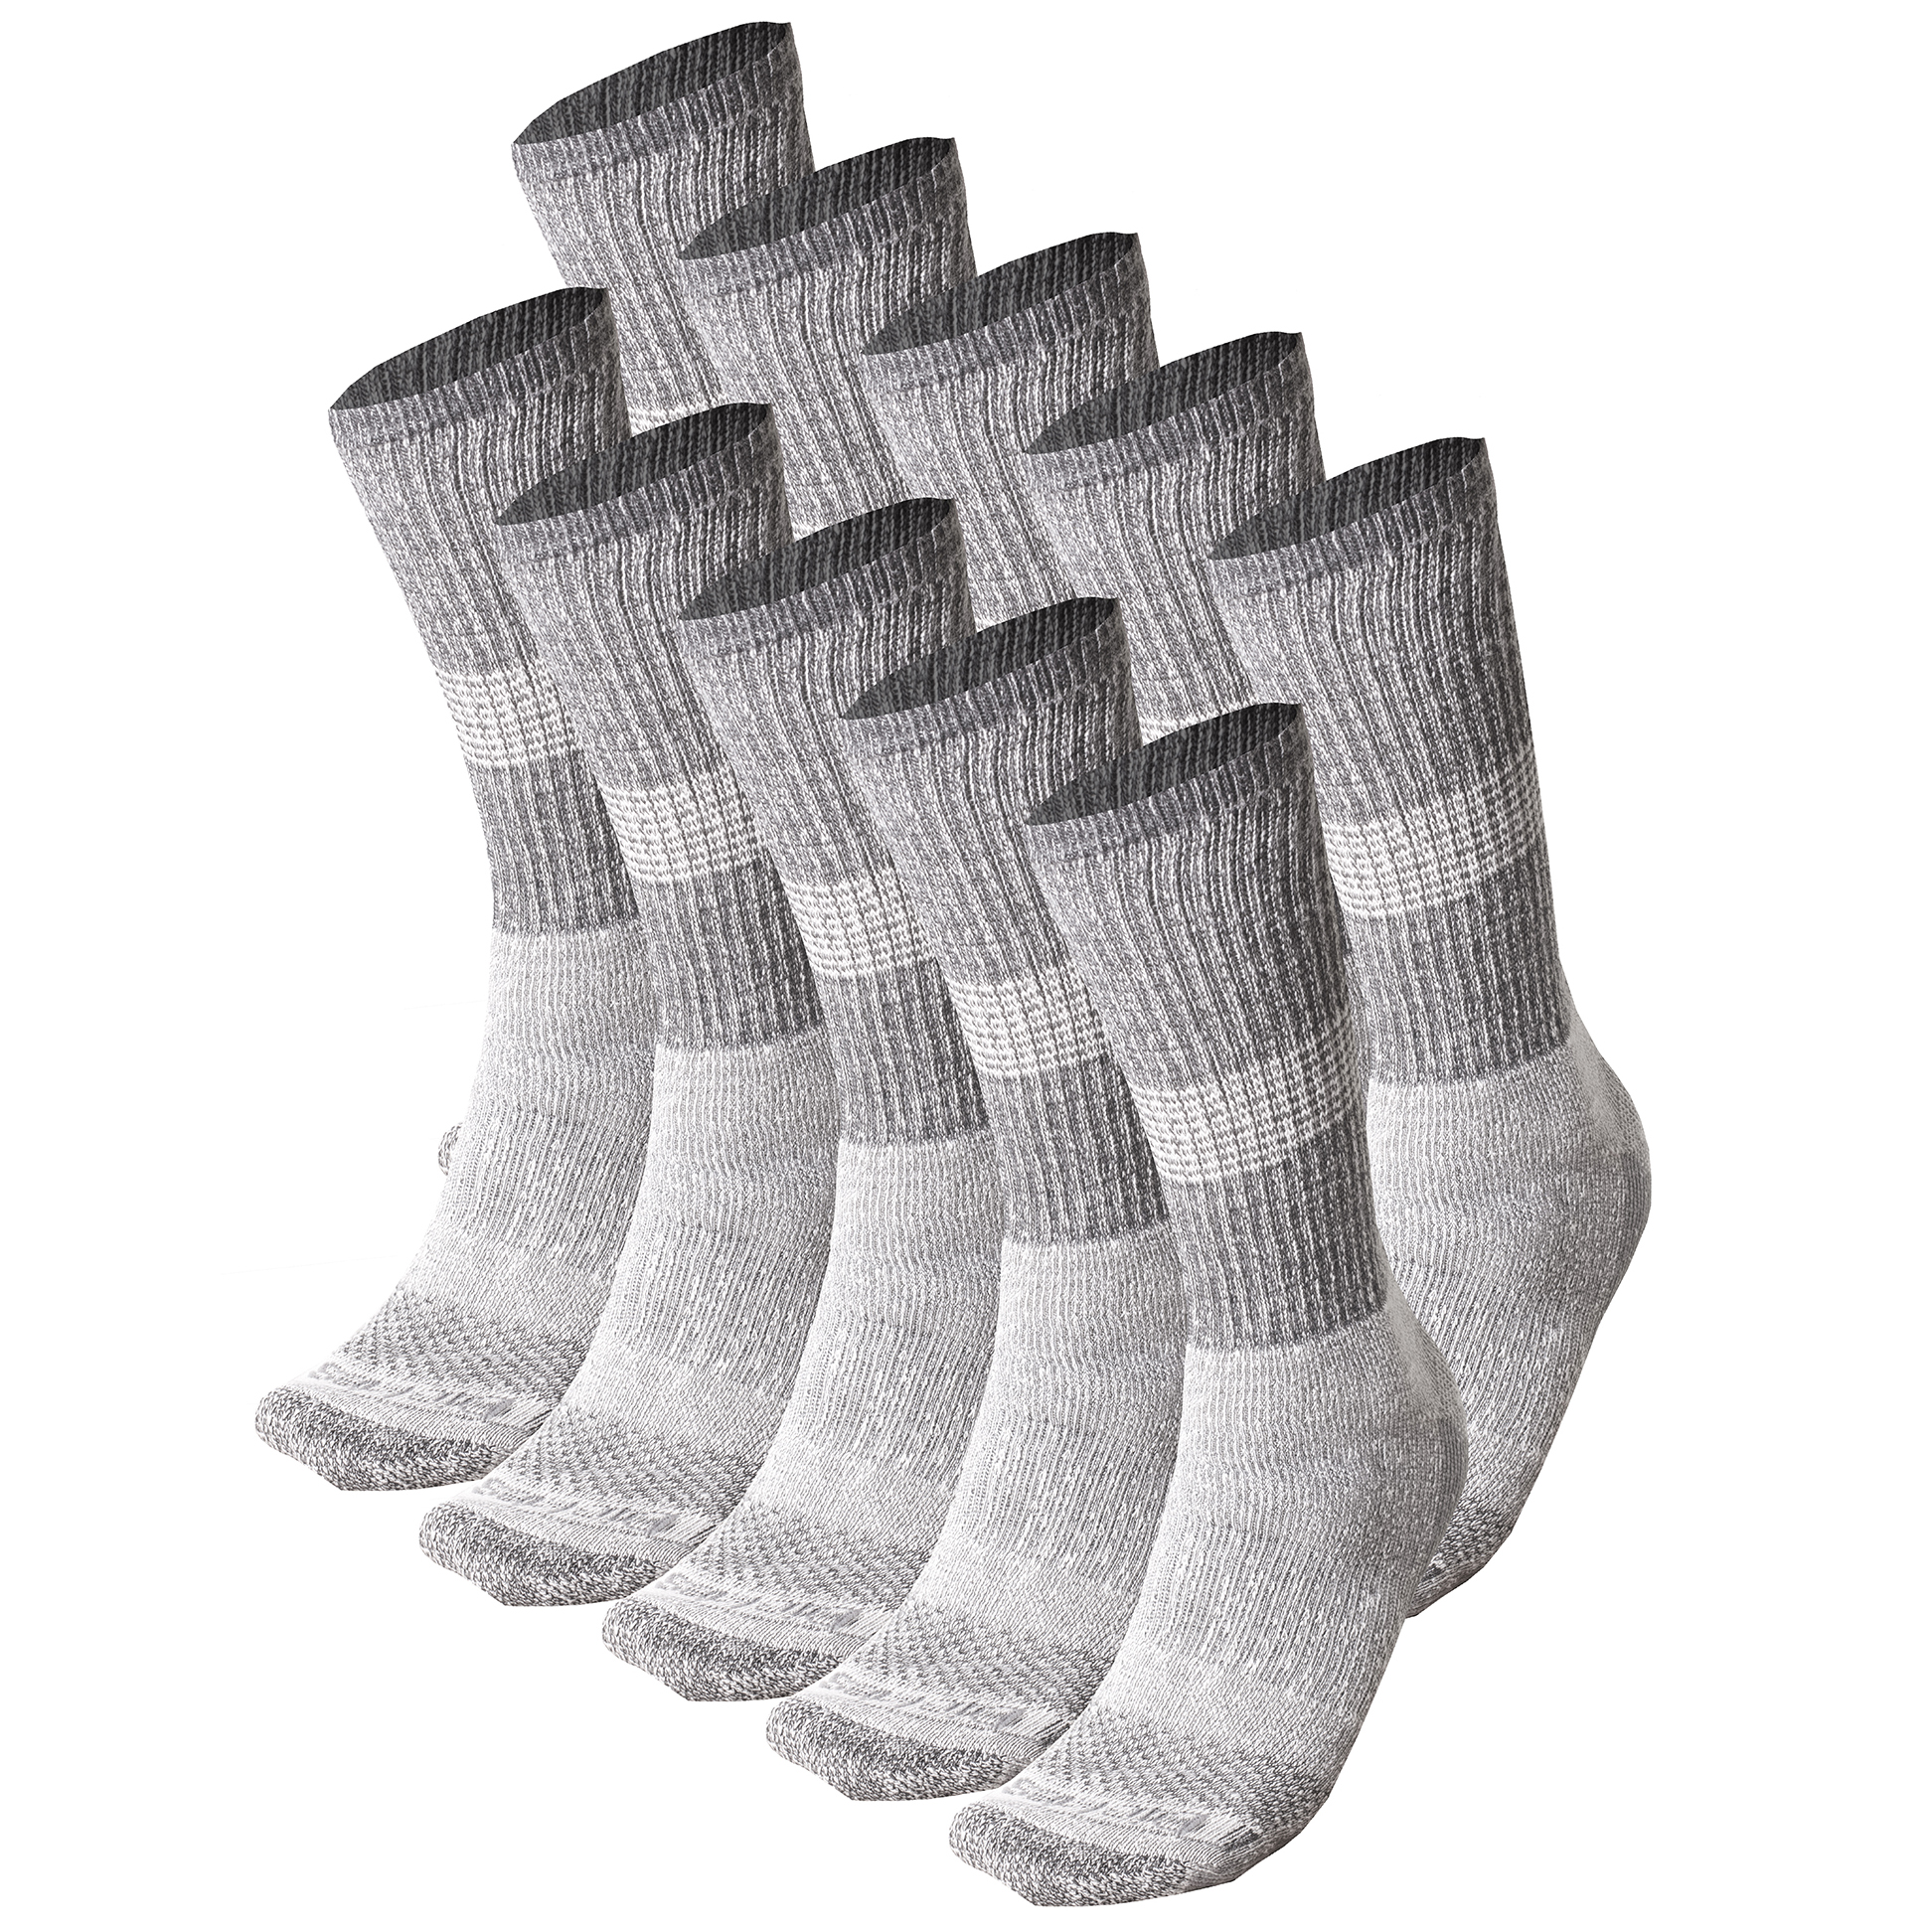 5 Pairs Dickies Heavyweight Dri-Tech Compression Work Socks